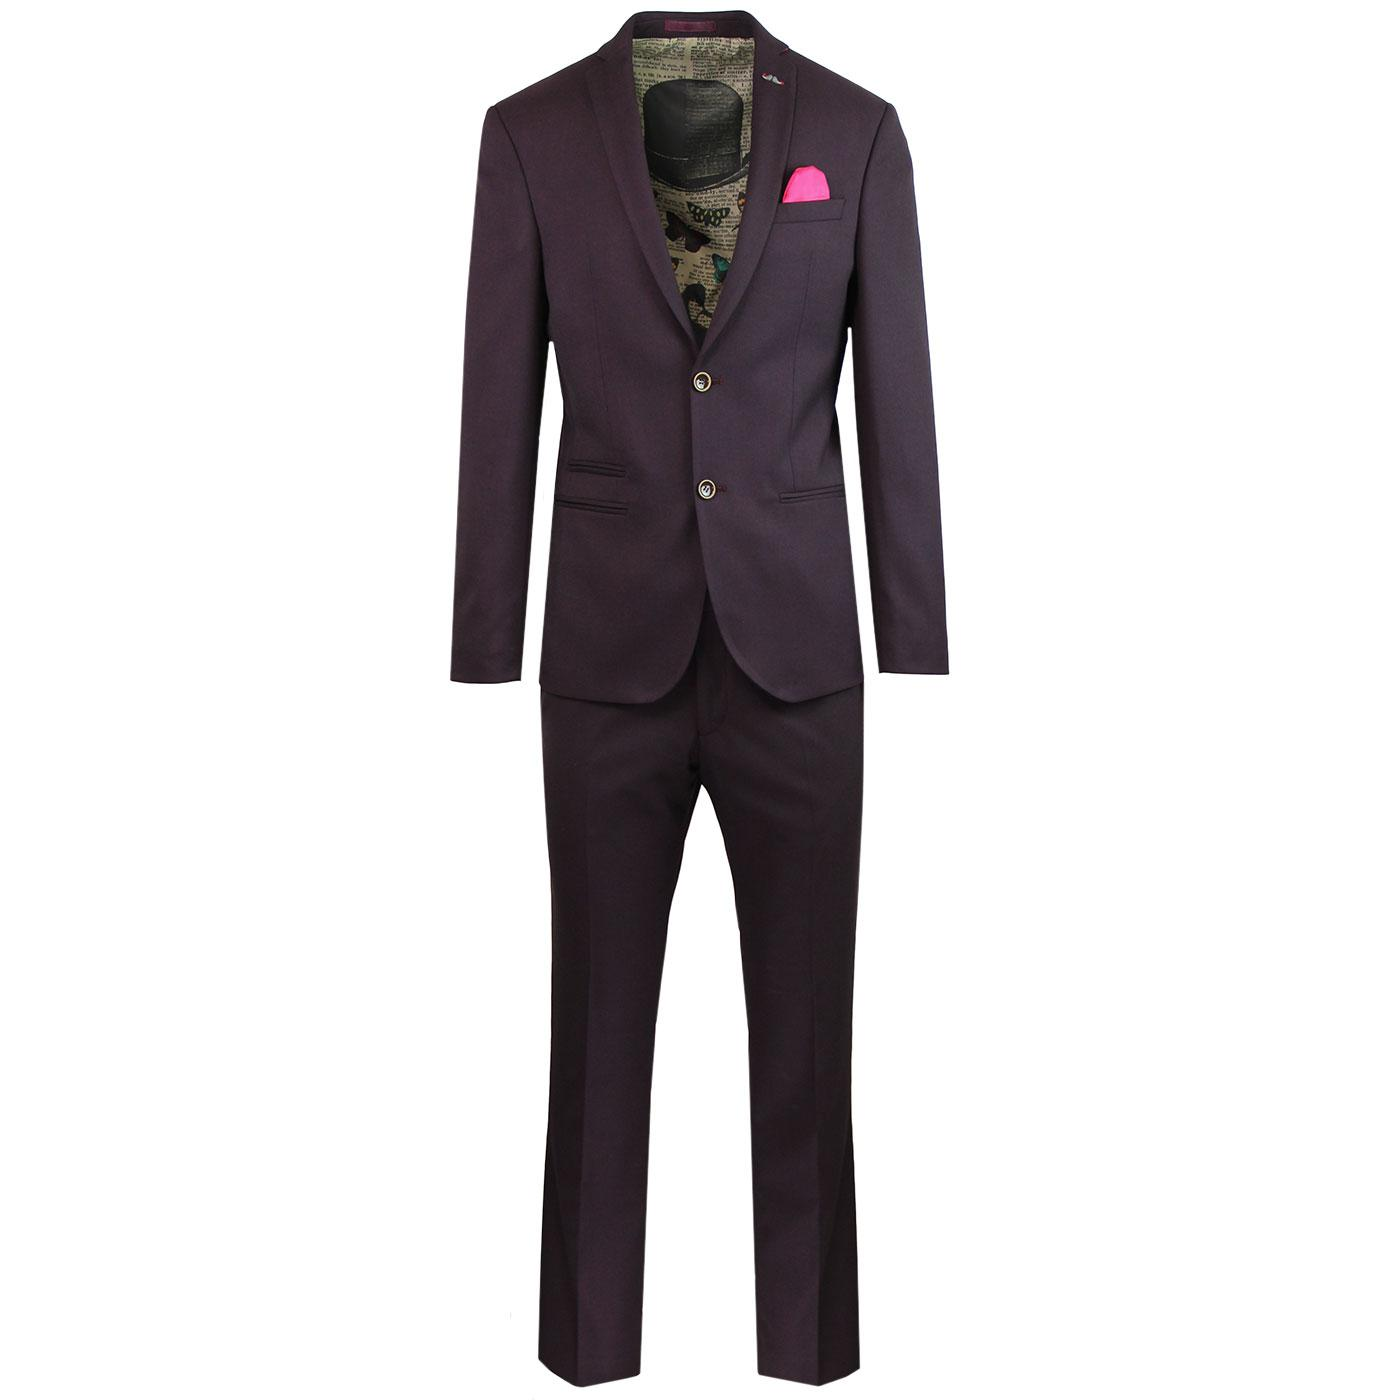 ANTIQUE ROGUE 2 Piece Mod Hopsack Suit in Burgundy